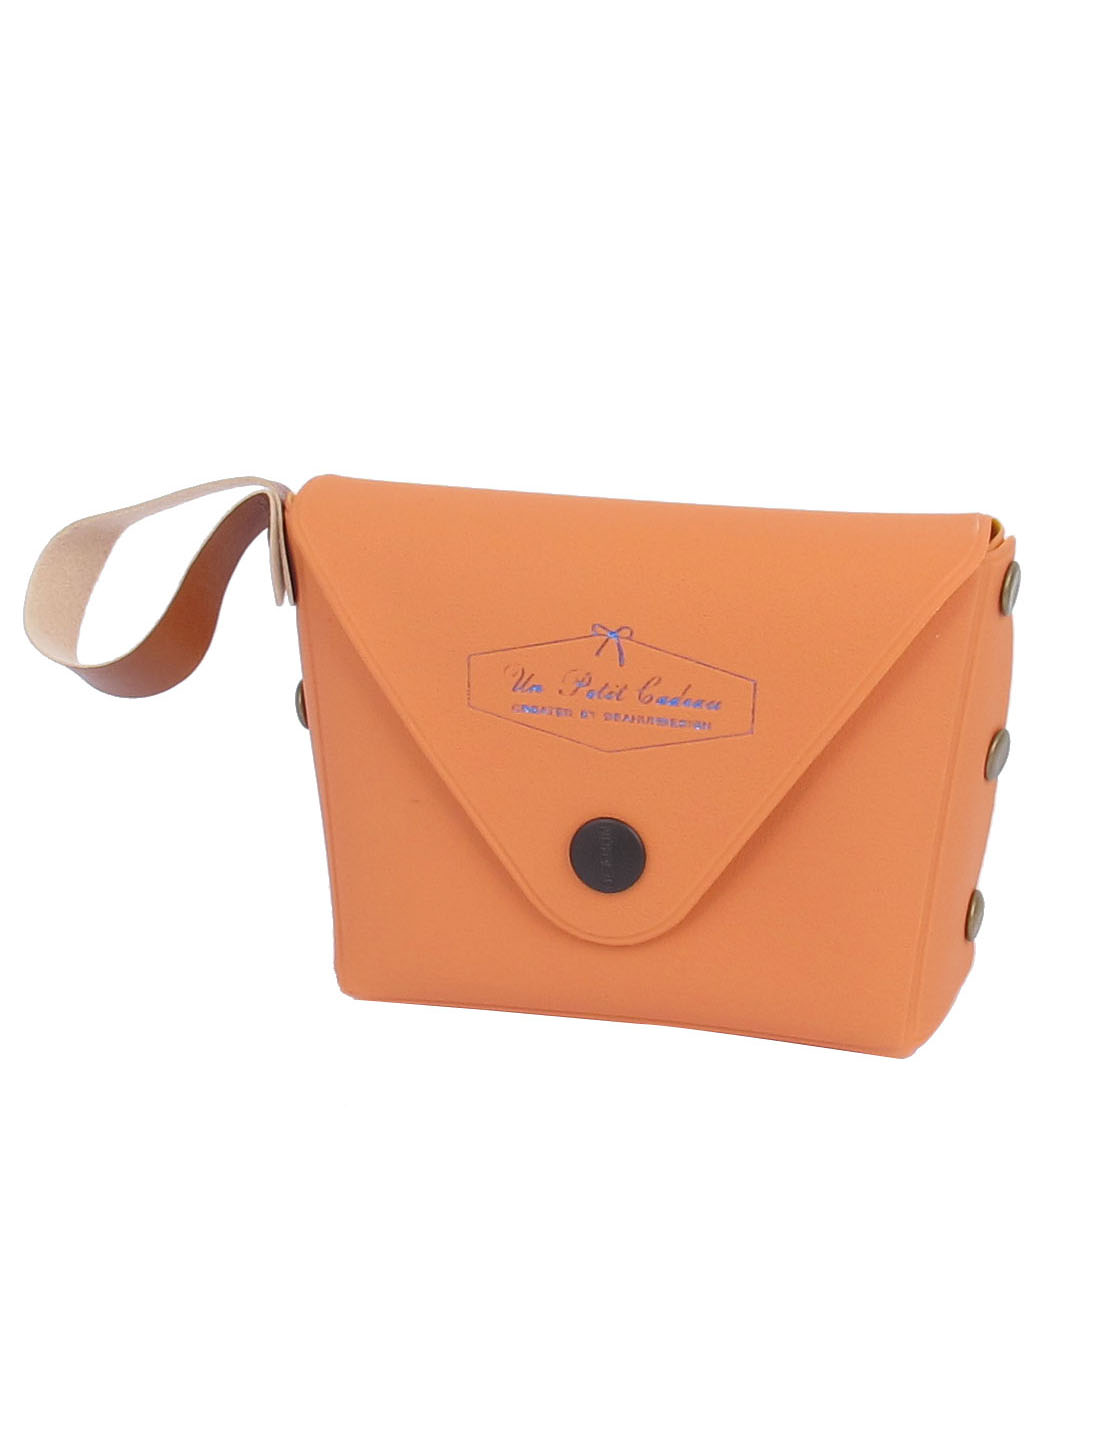 "3.7"" Length Orange Faux Leather Cute Mini Single Compartment English Words Pattern Portable Change Coin Purse Cash Key for Kids Ladies"